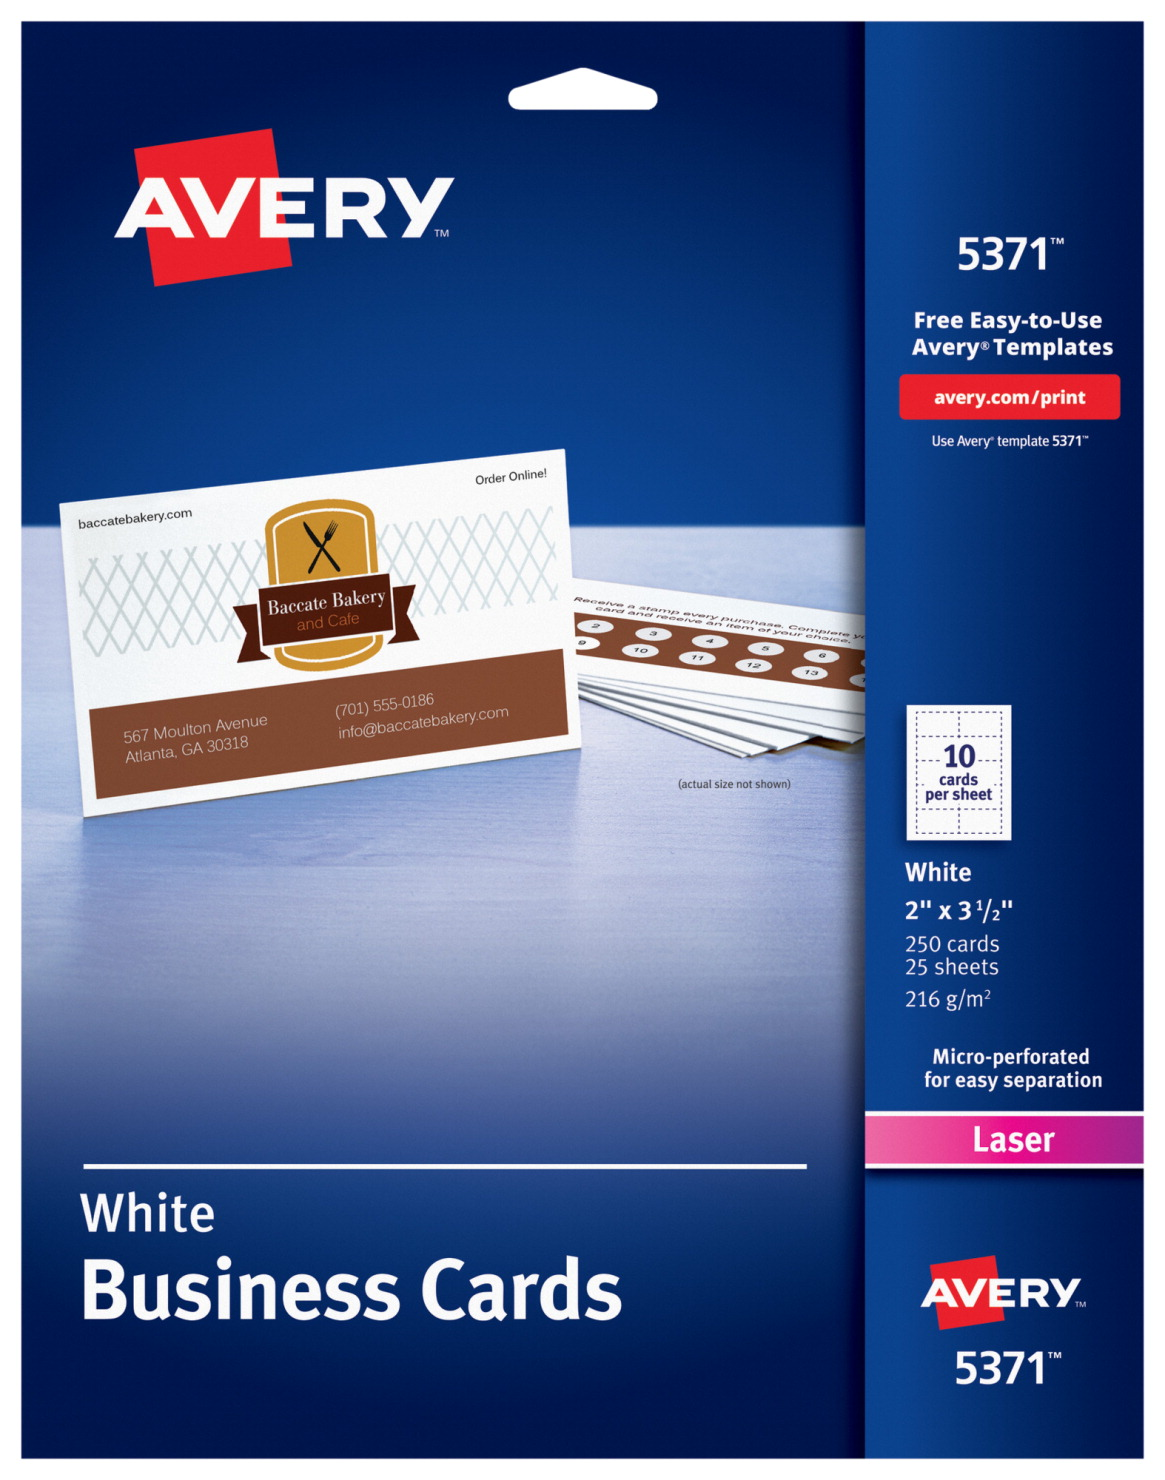 Avery Microperforated Business Cards For Laser Printers, White ...